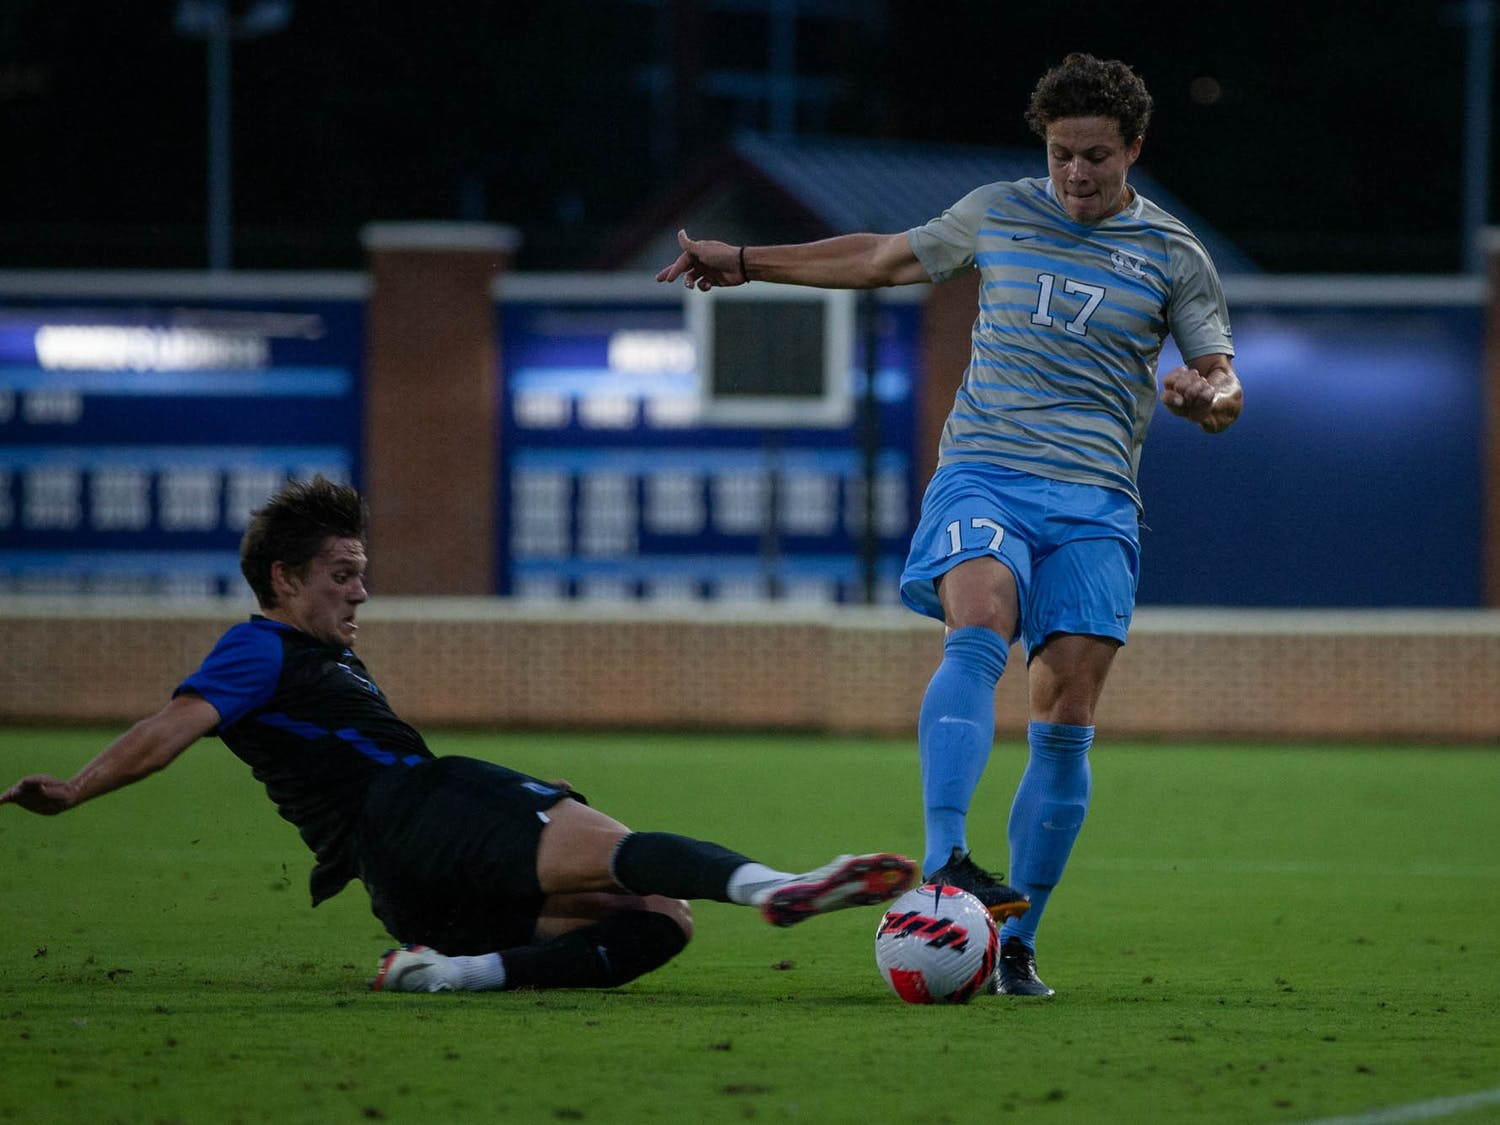 Third-year Cameron Fisher (17) fights for the ball during the game against Duke at Dorrance Field on Sunday, Sept. 19. UNC lost 3-0.